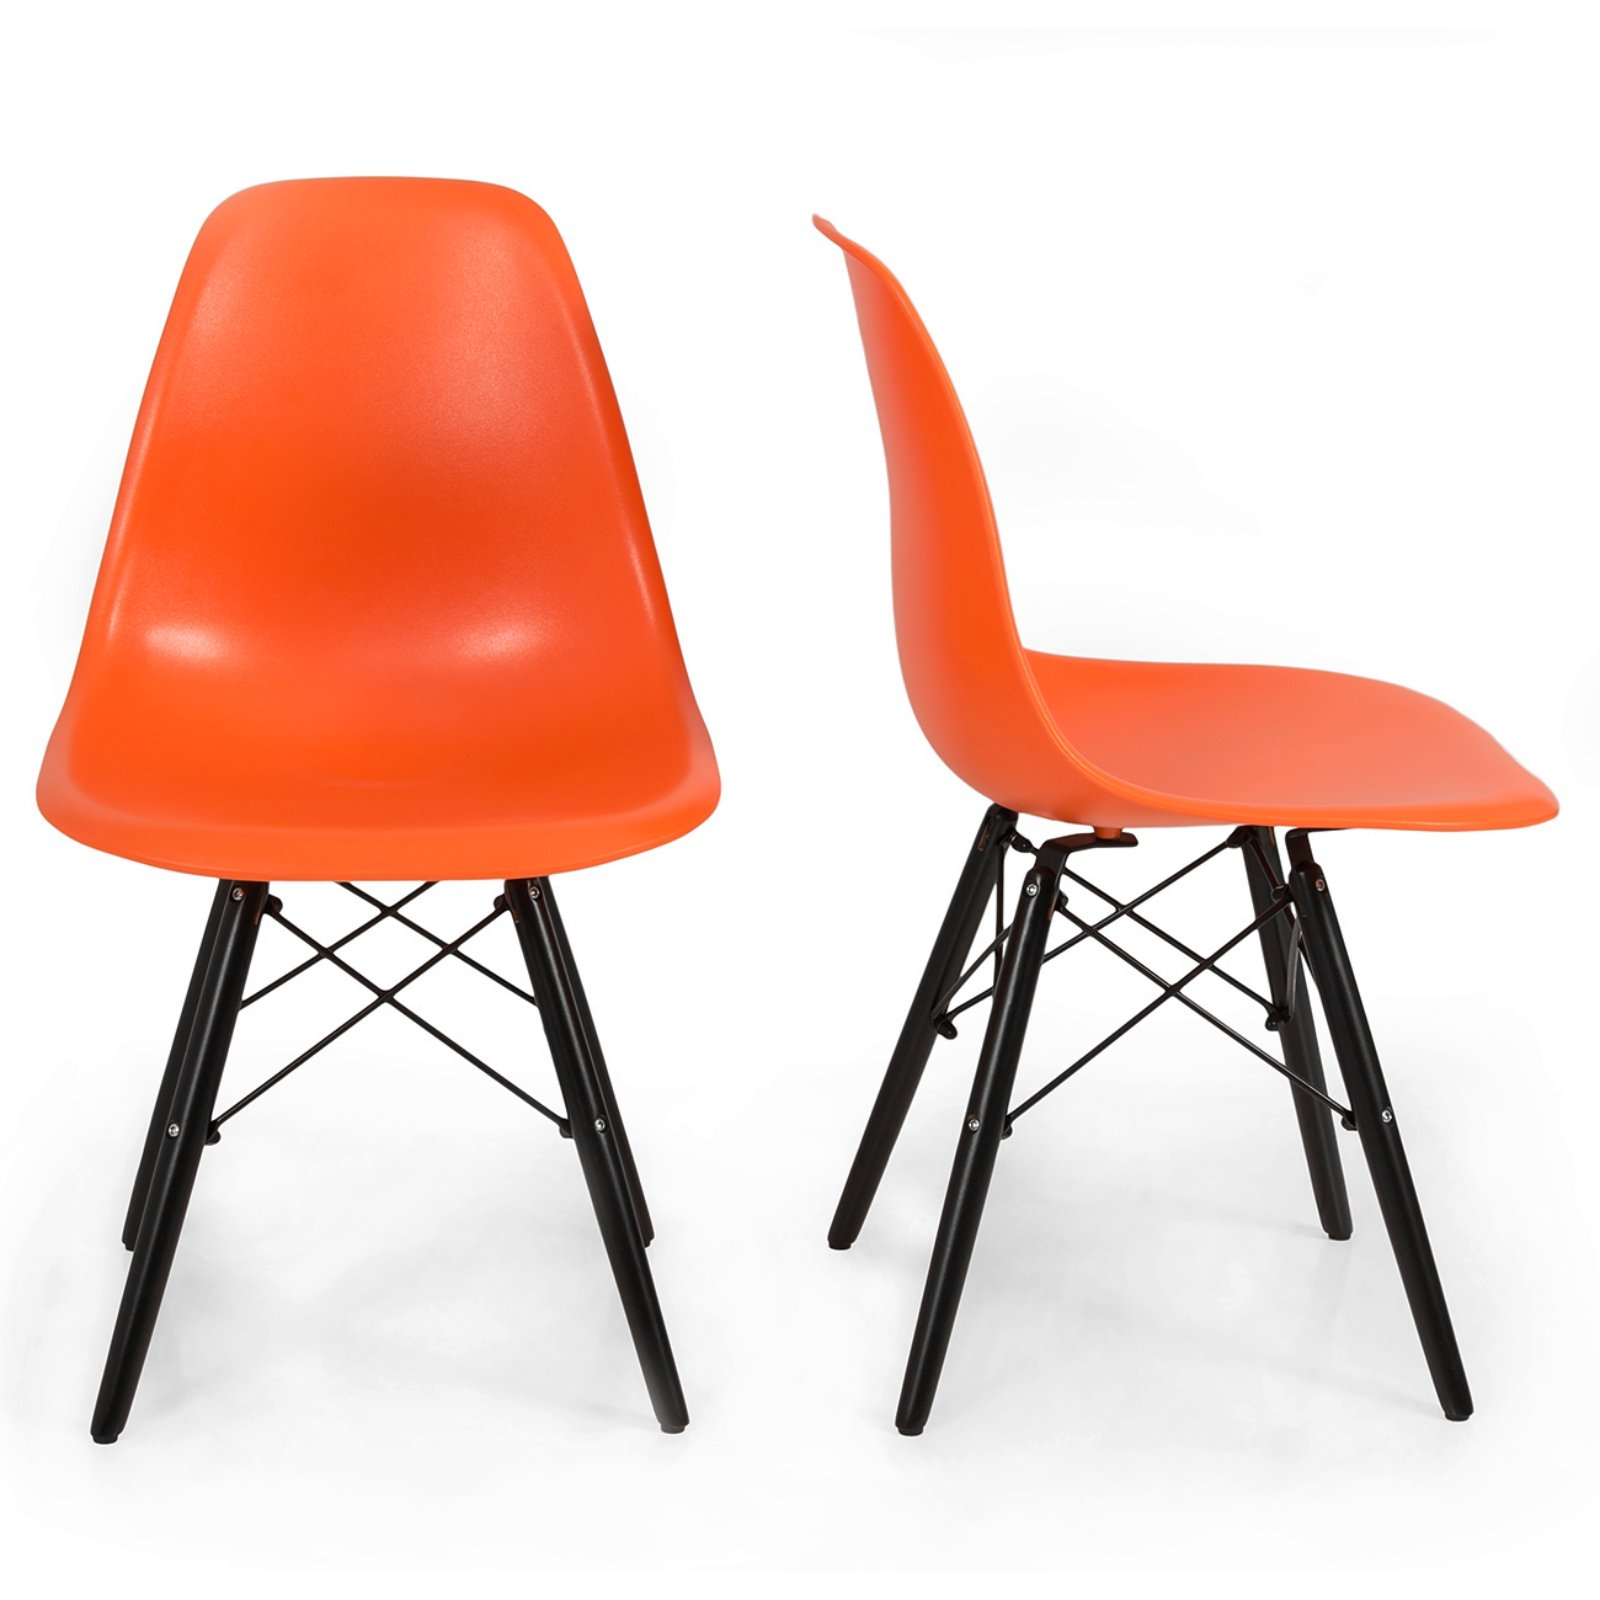 Set of 2 Mid Century Modern Style Eco-Friendly Materials Dining Side Chair Orange W/ Black Wood #263